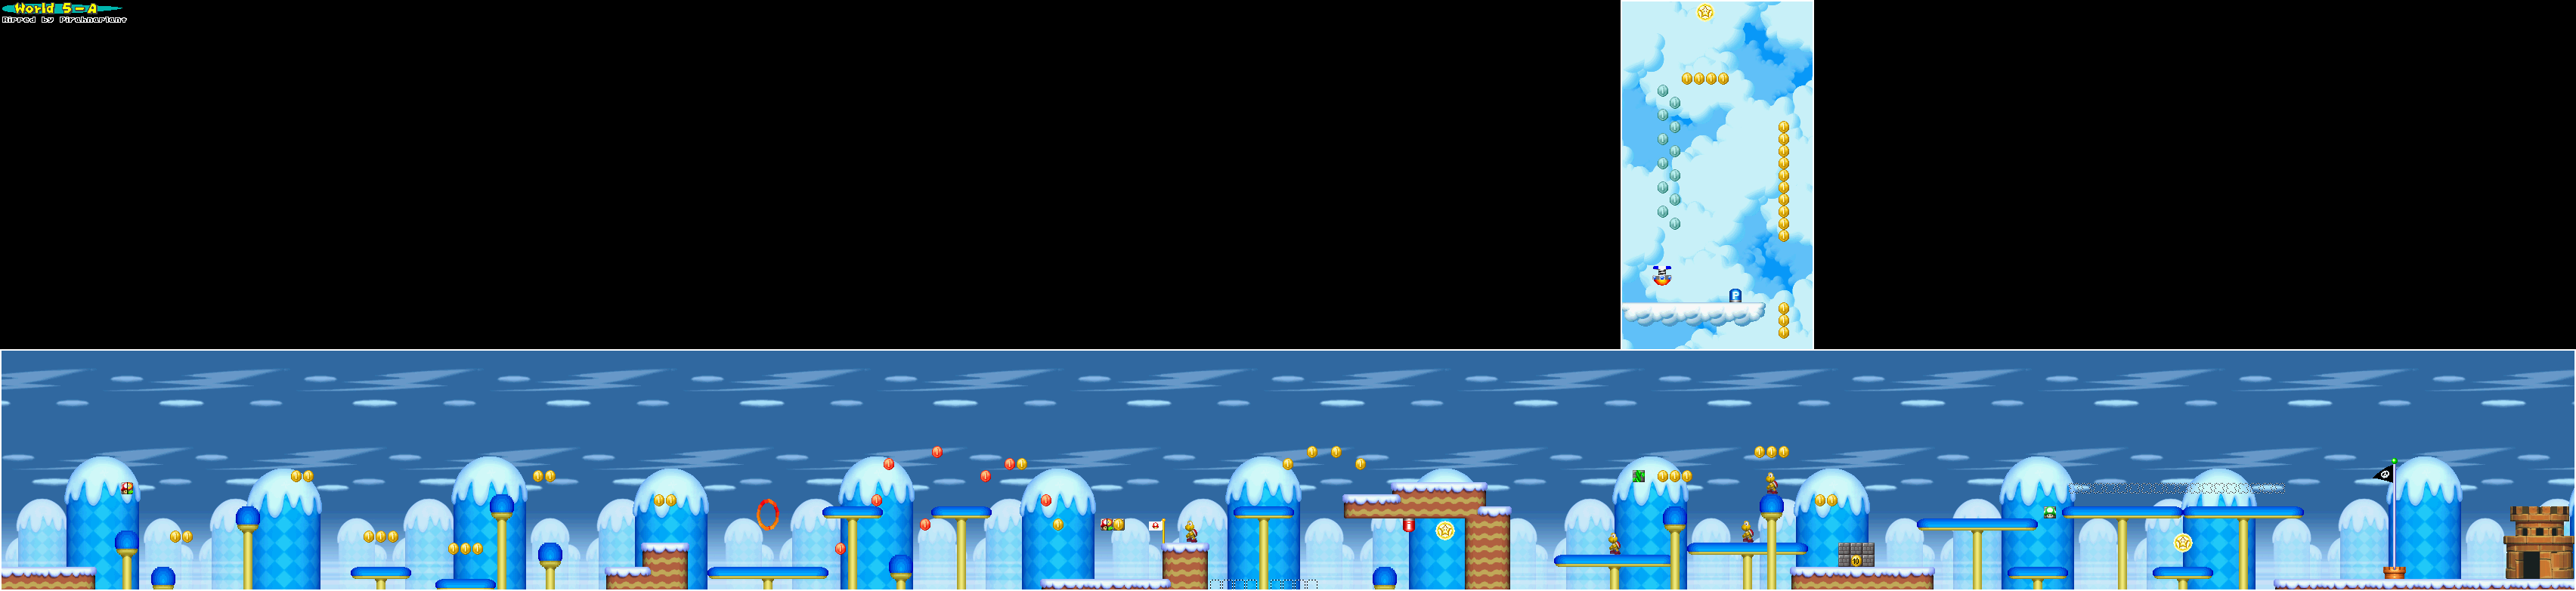 New super mario bros game maps ds 5 a gumiabroncs Gallery